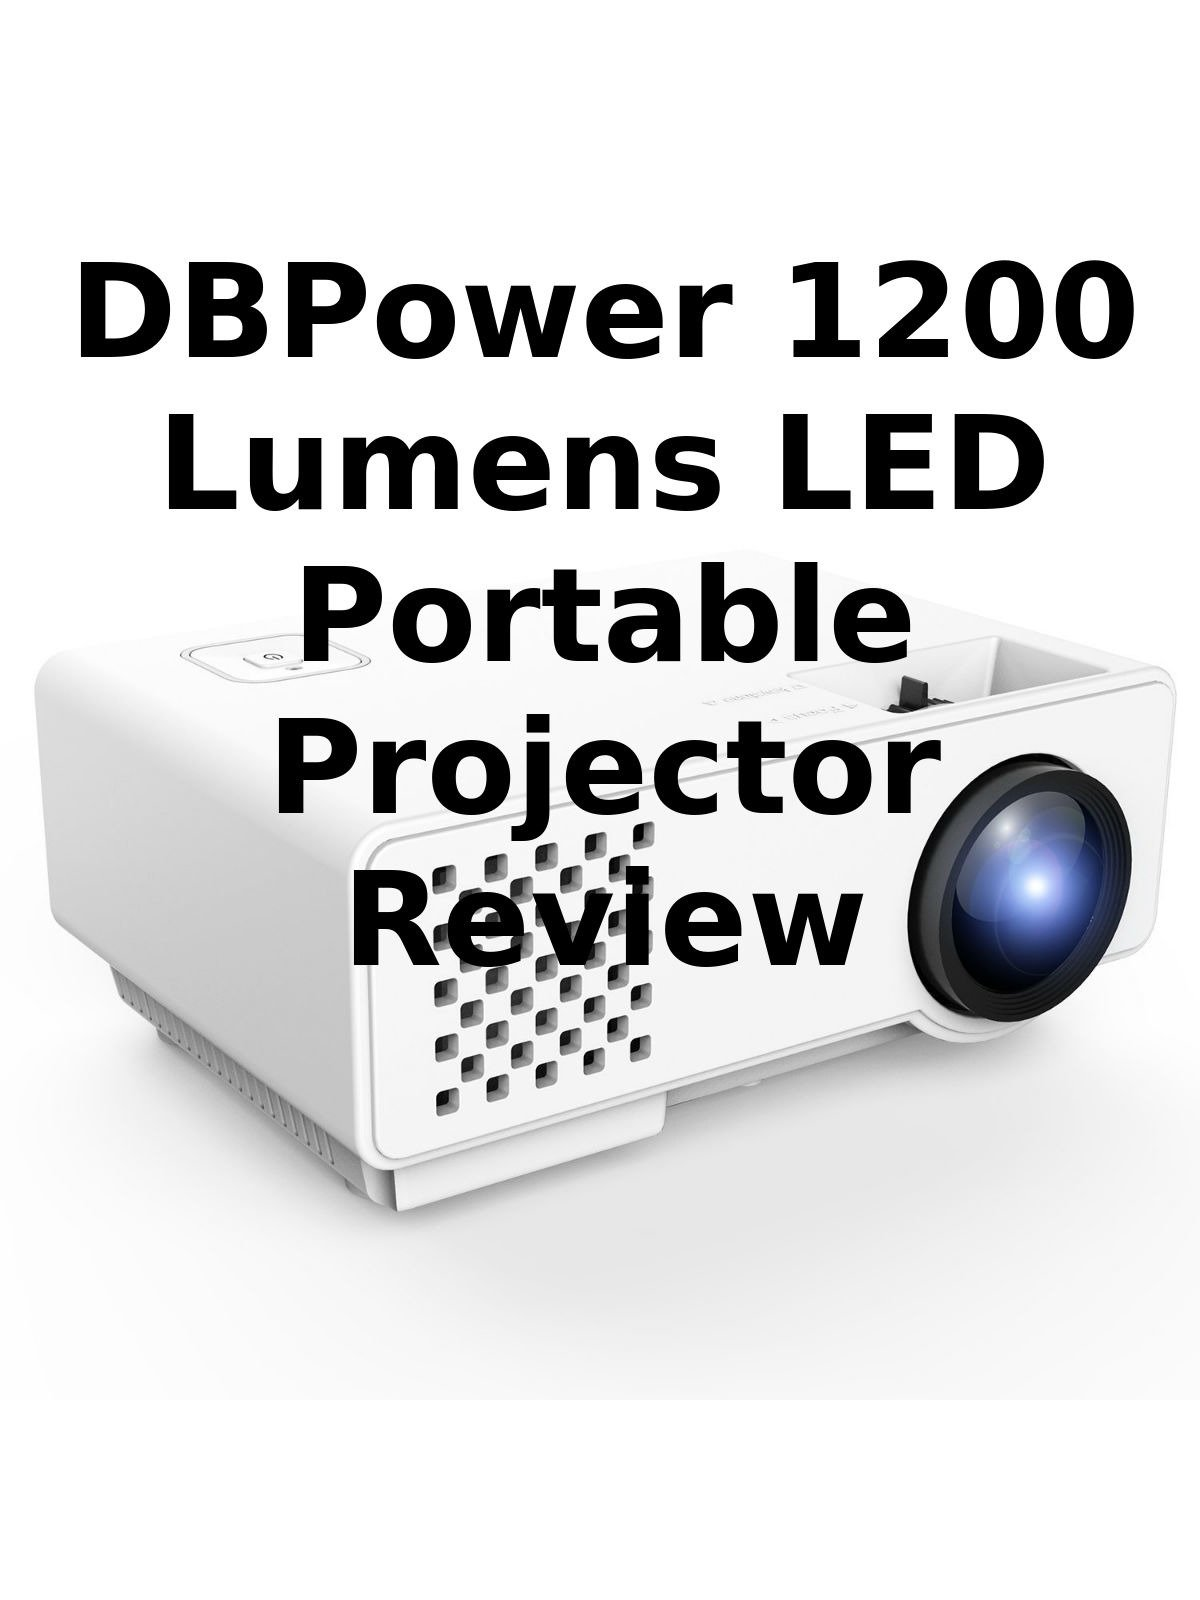 Review: DBPower 1200 Lumens LED Portable Projector Review